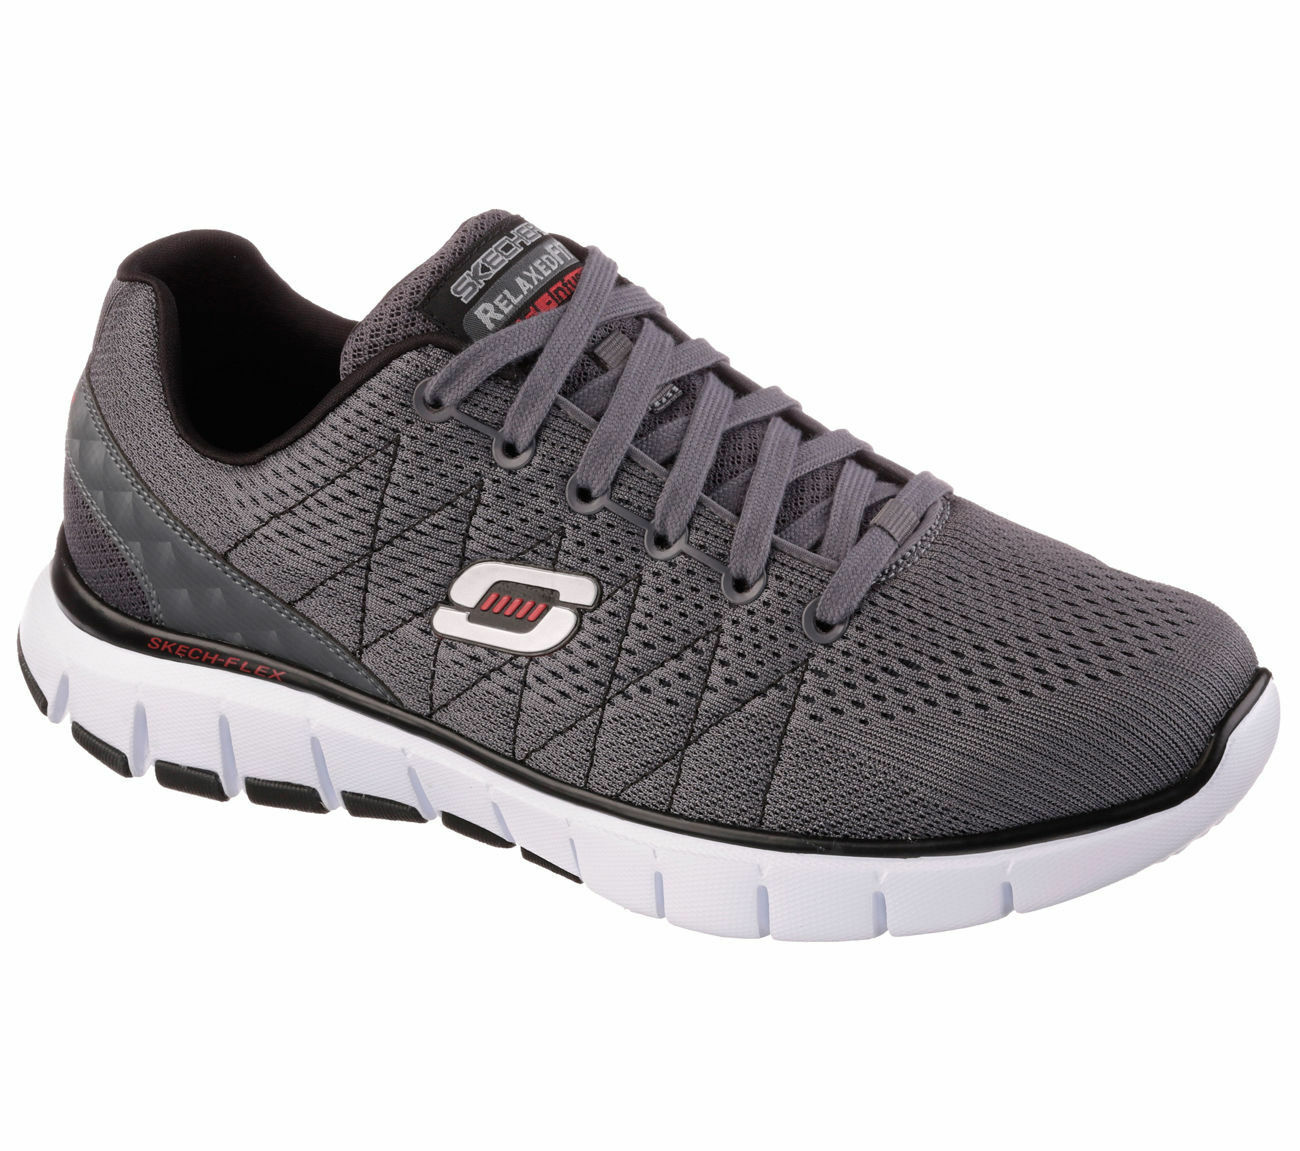 51442 Skechers Men's Running shoes Lace-up Charcoal Black CCBK